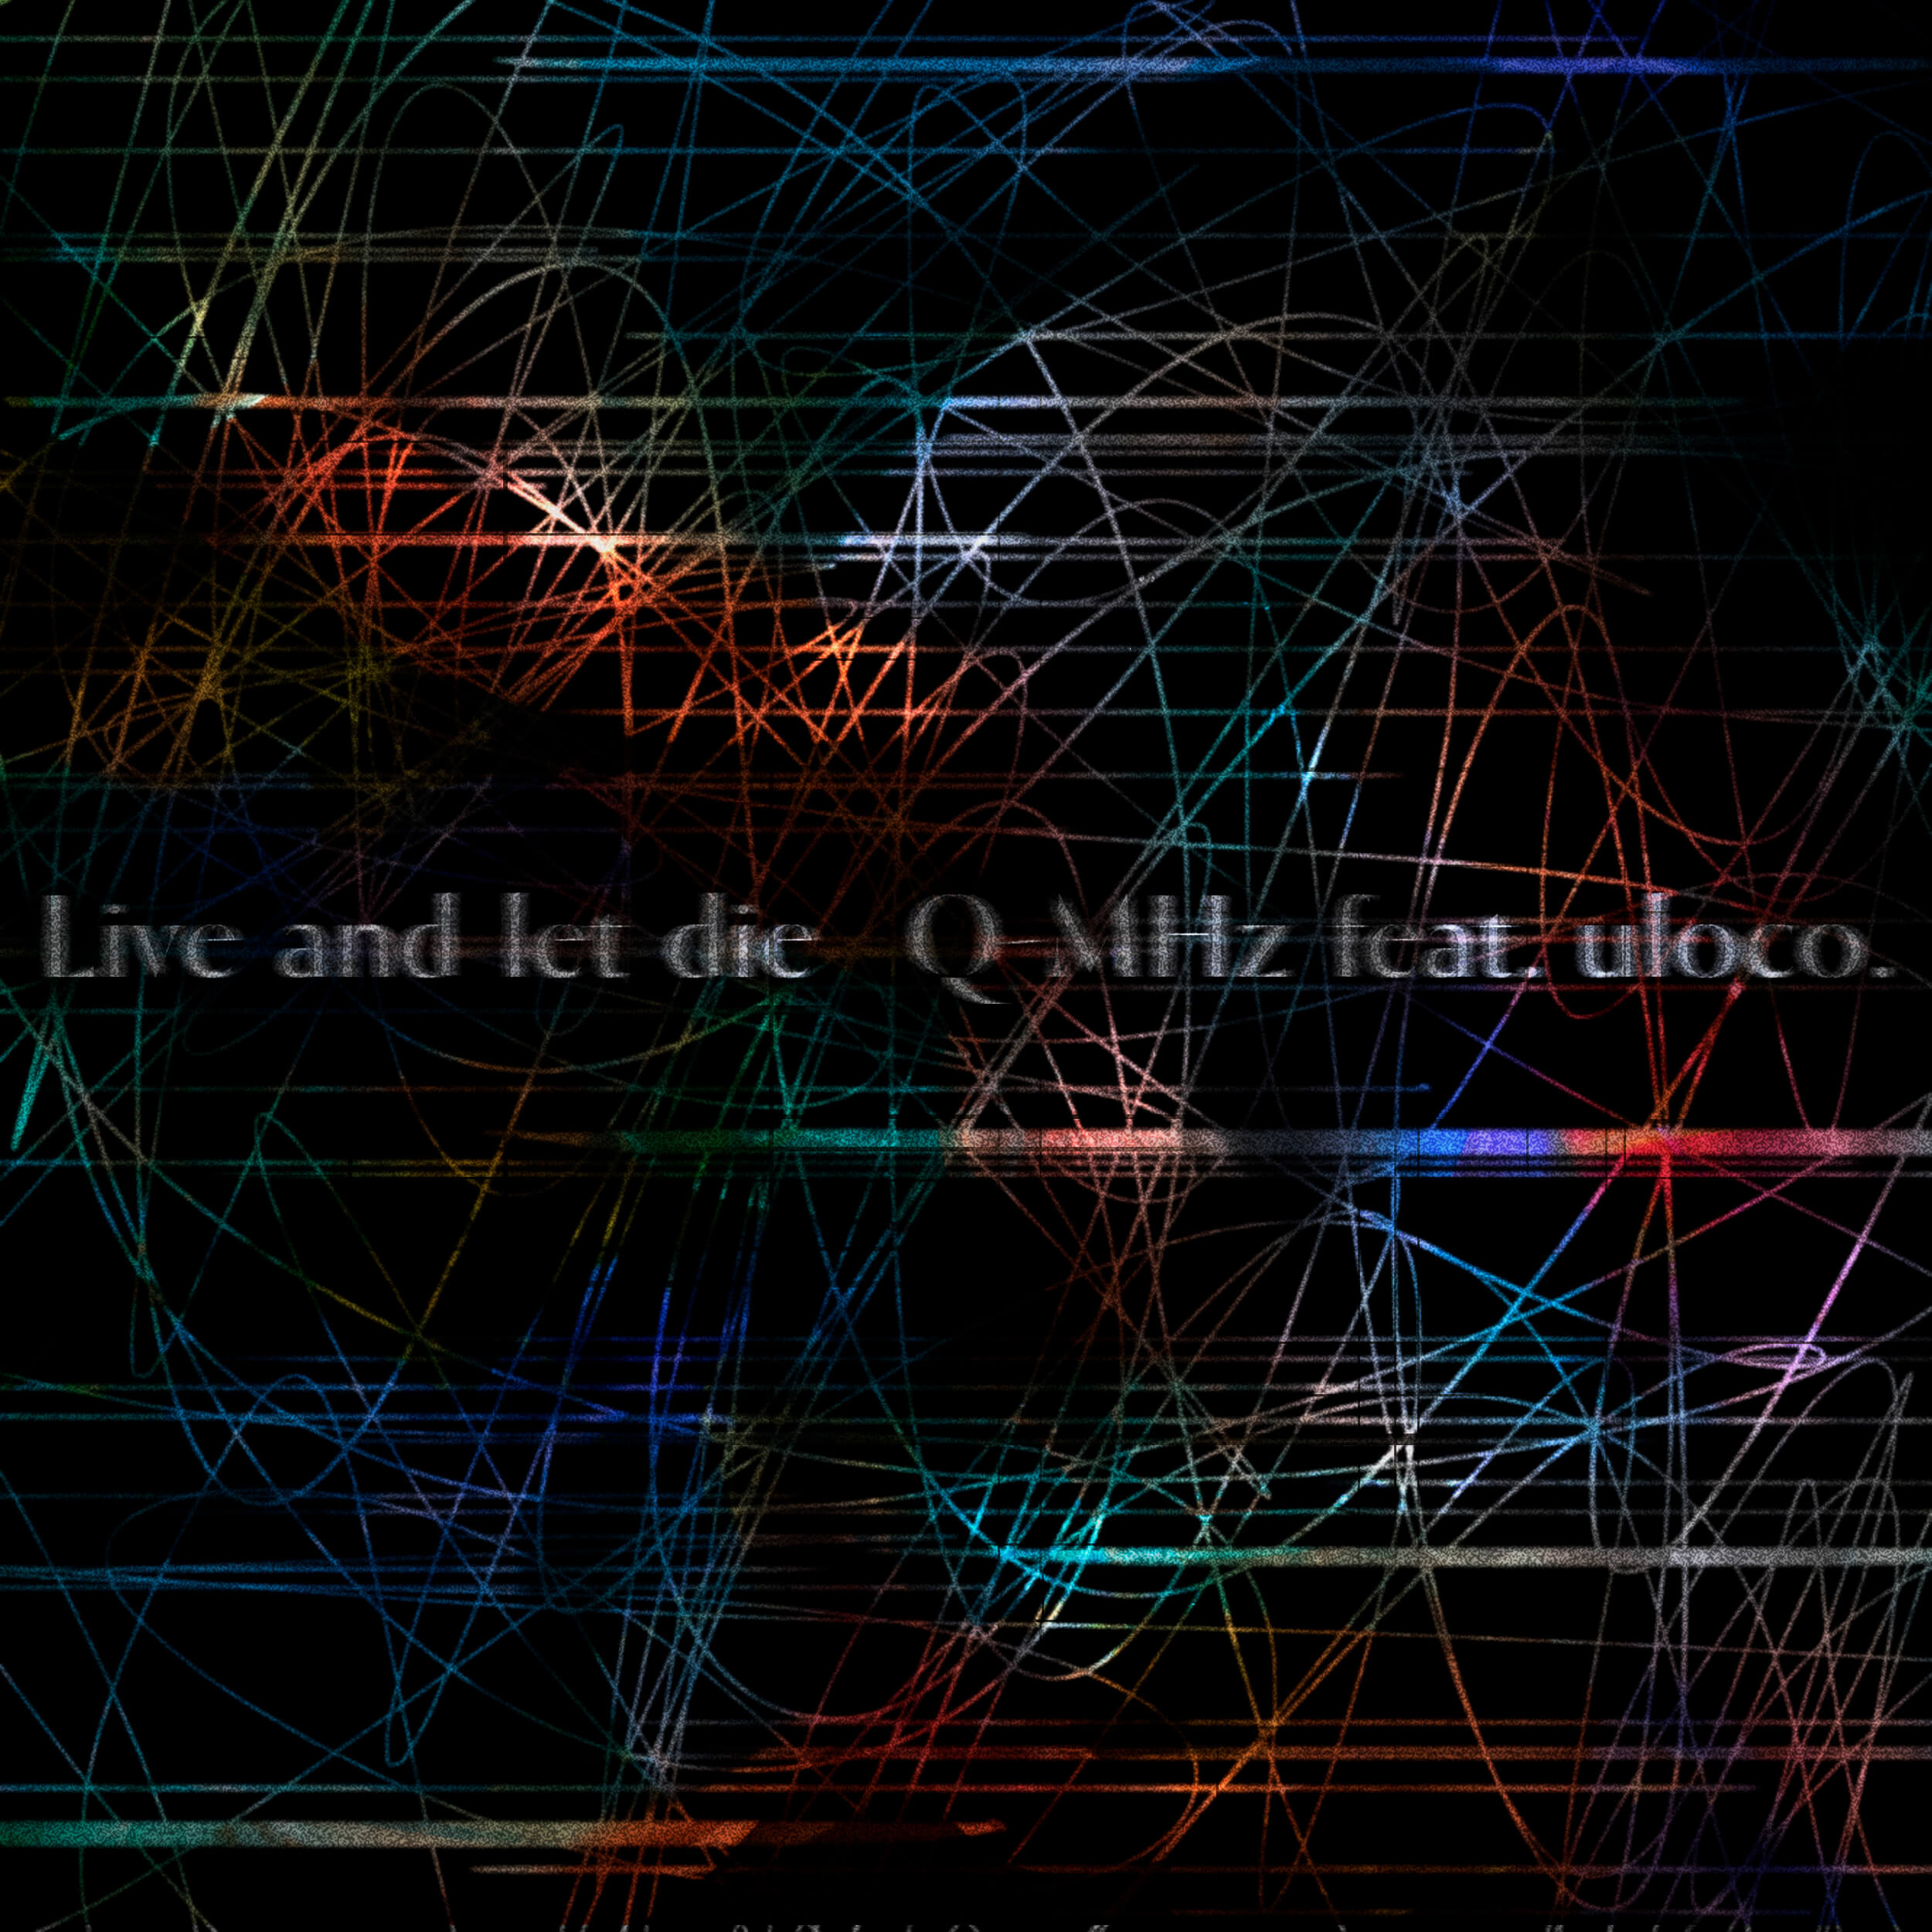 q-mhz_feat_uloco_live_and_let_die_jacket-2